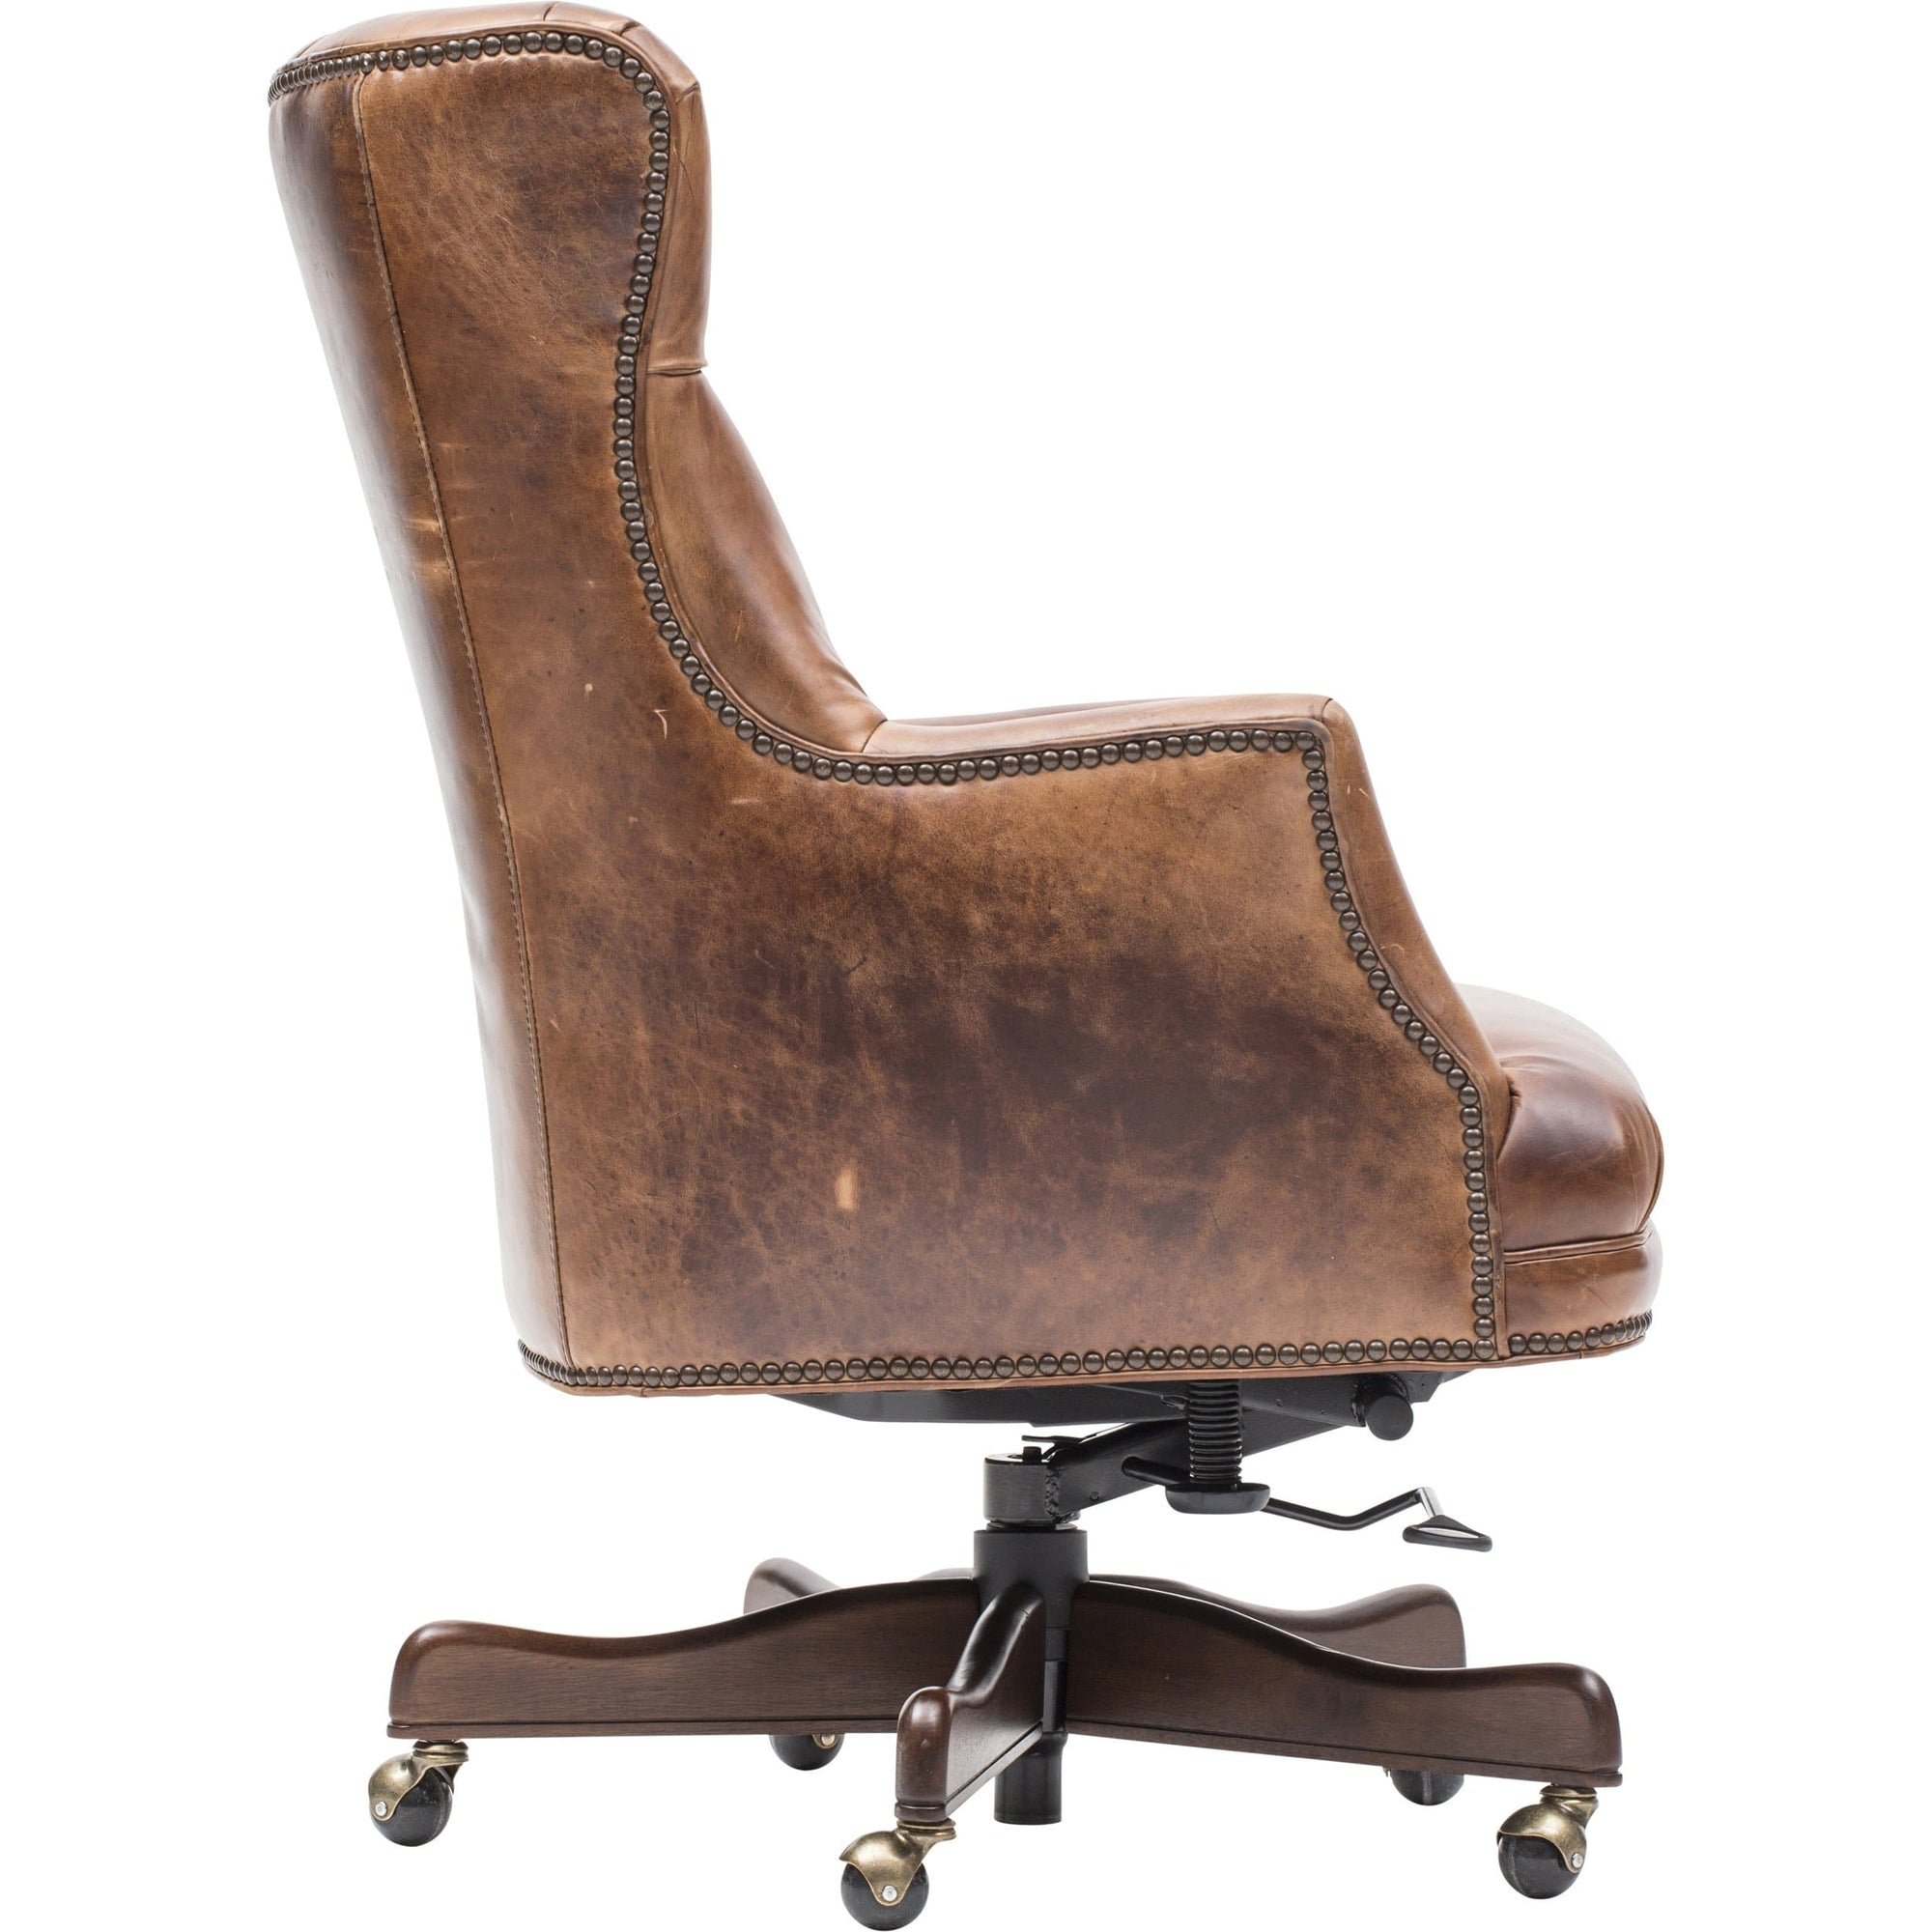 Theodore Executive Leather Office Chair High Fashion Home